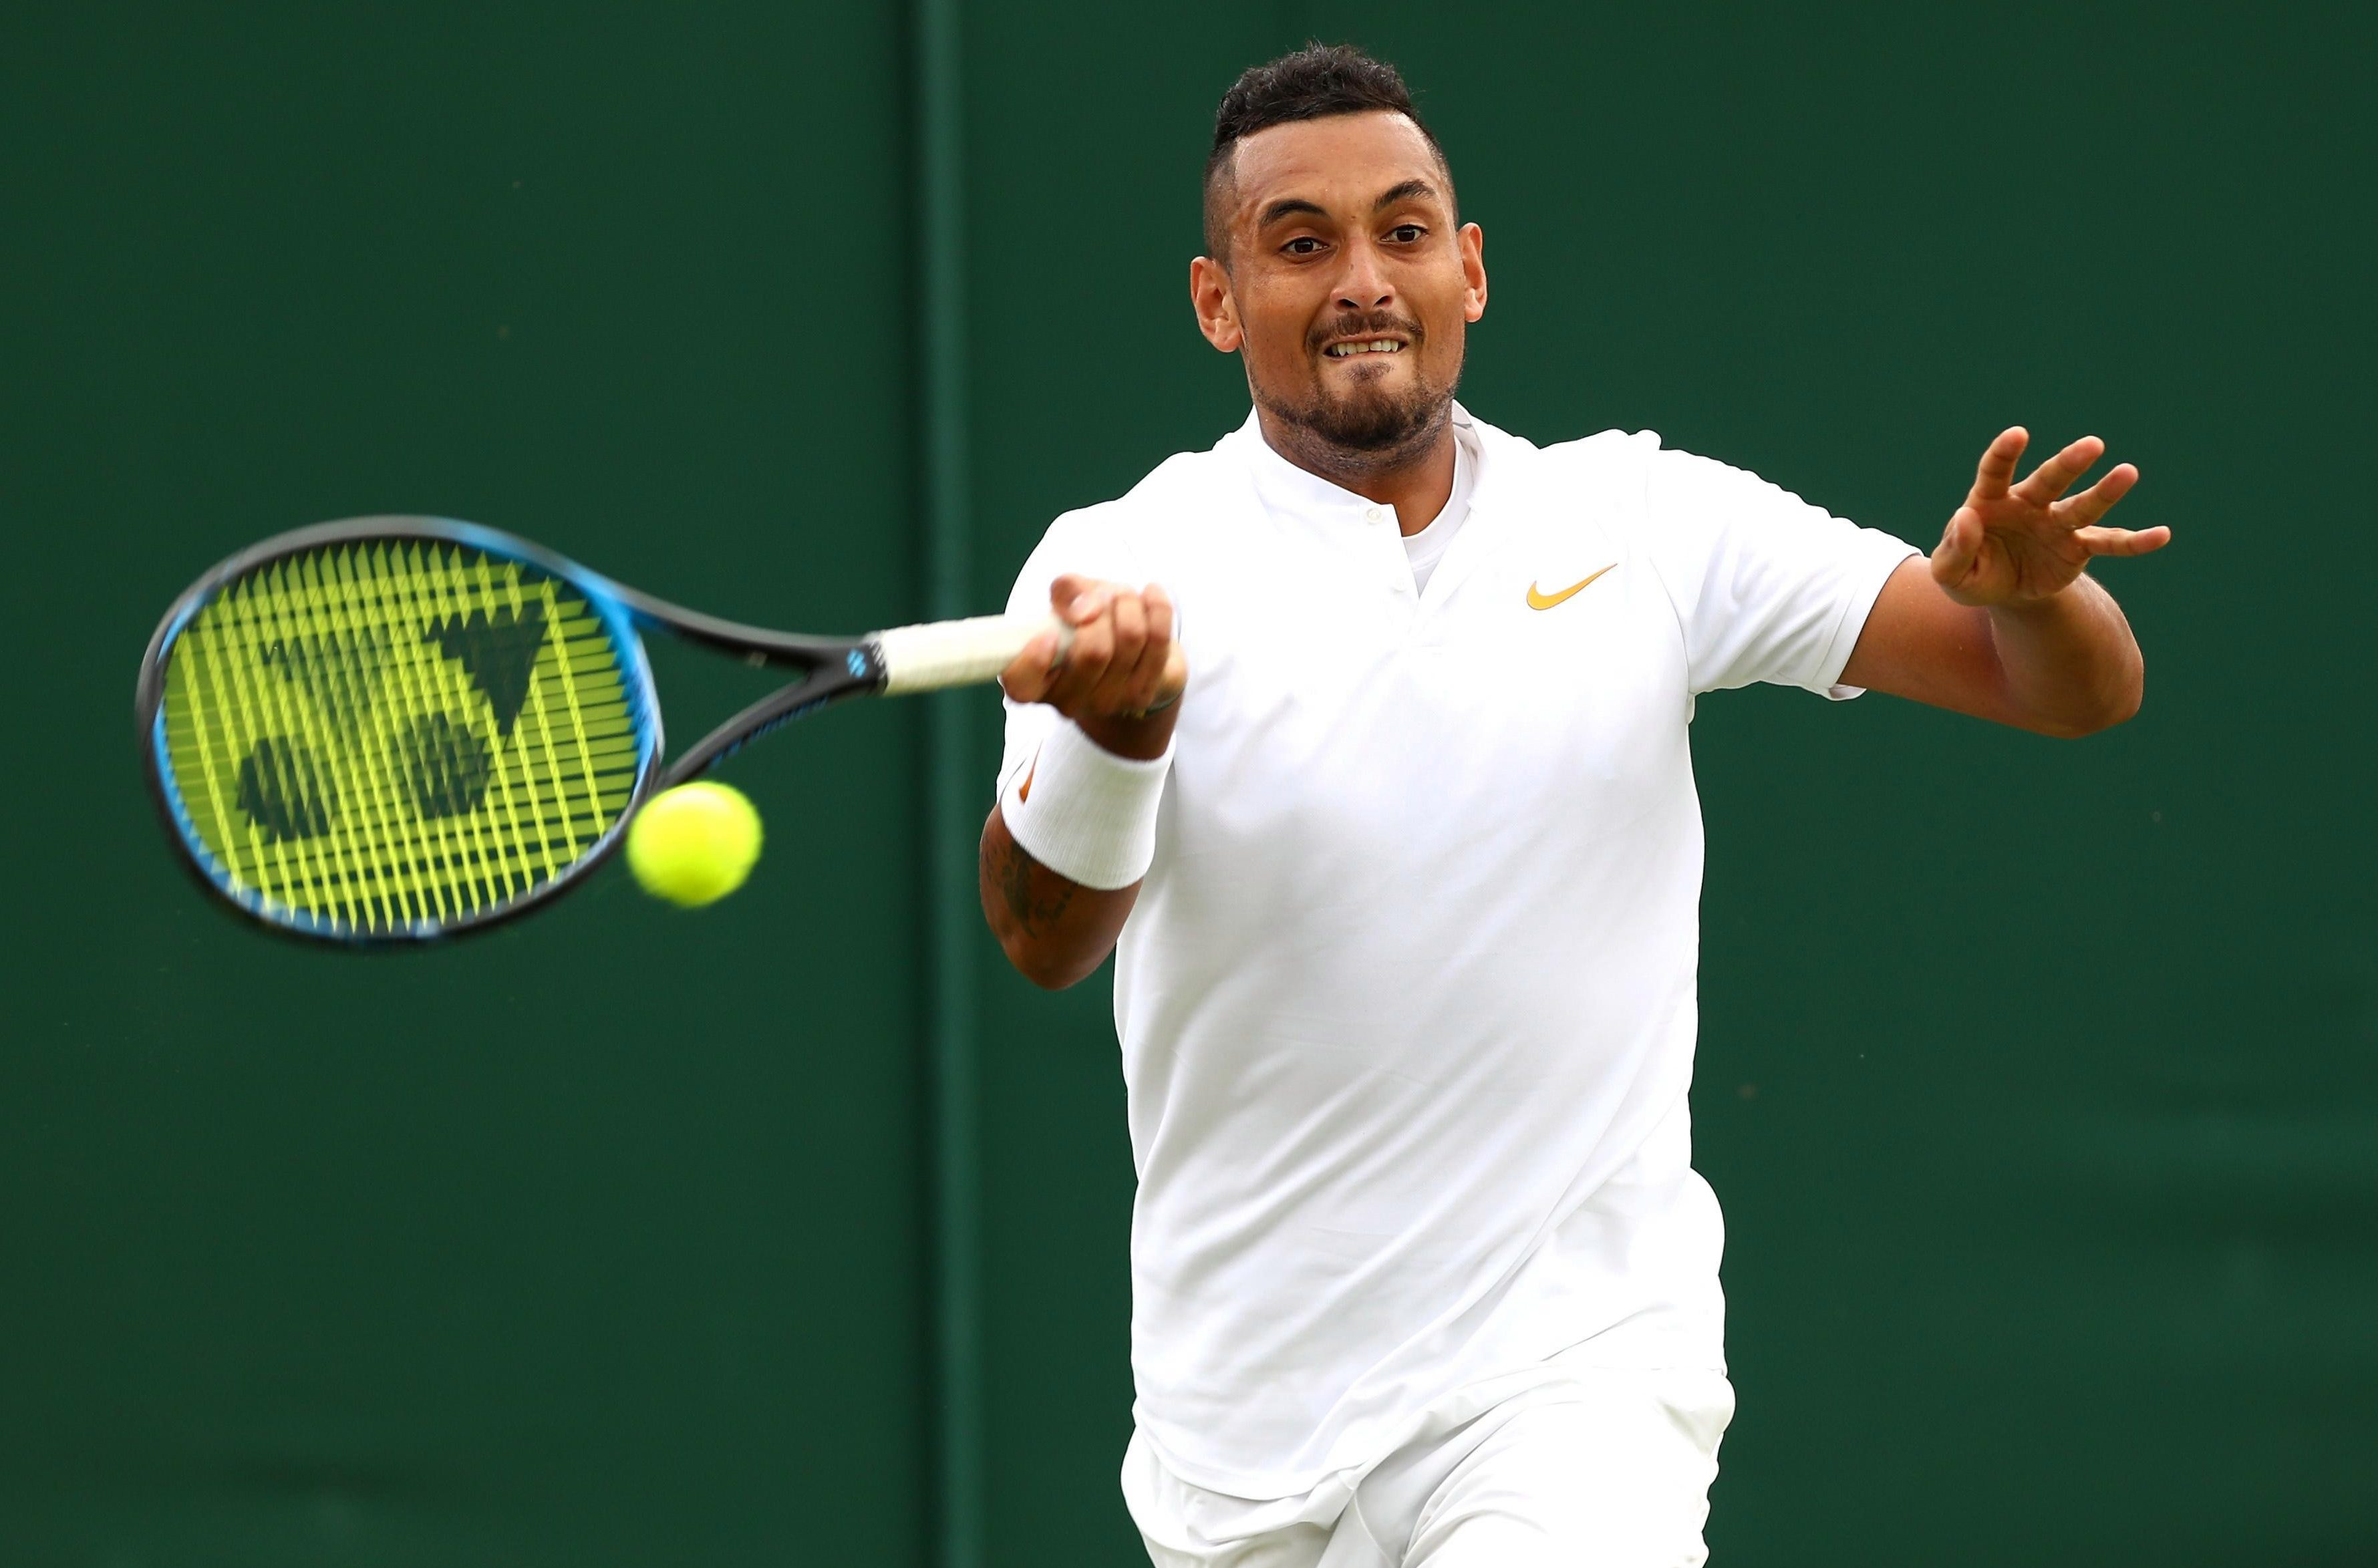 Nick Kyrgios has advanced through to the third round at Wimbledon after beating Robin Haase in straight sets